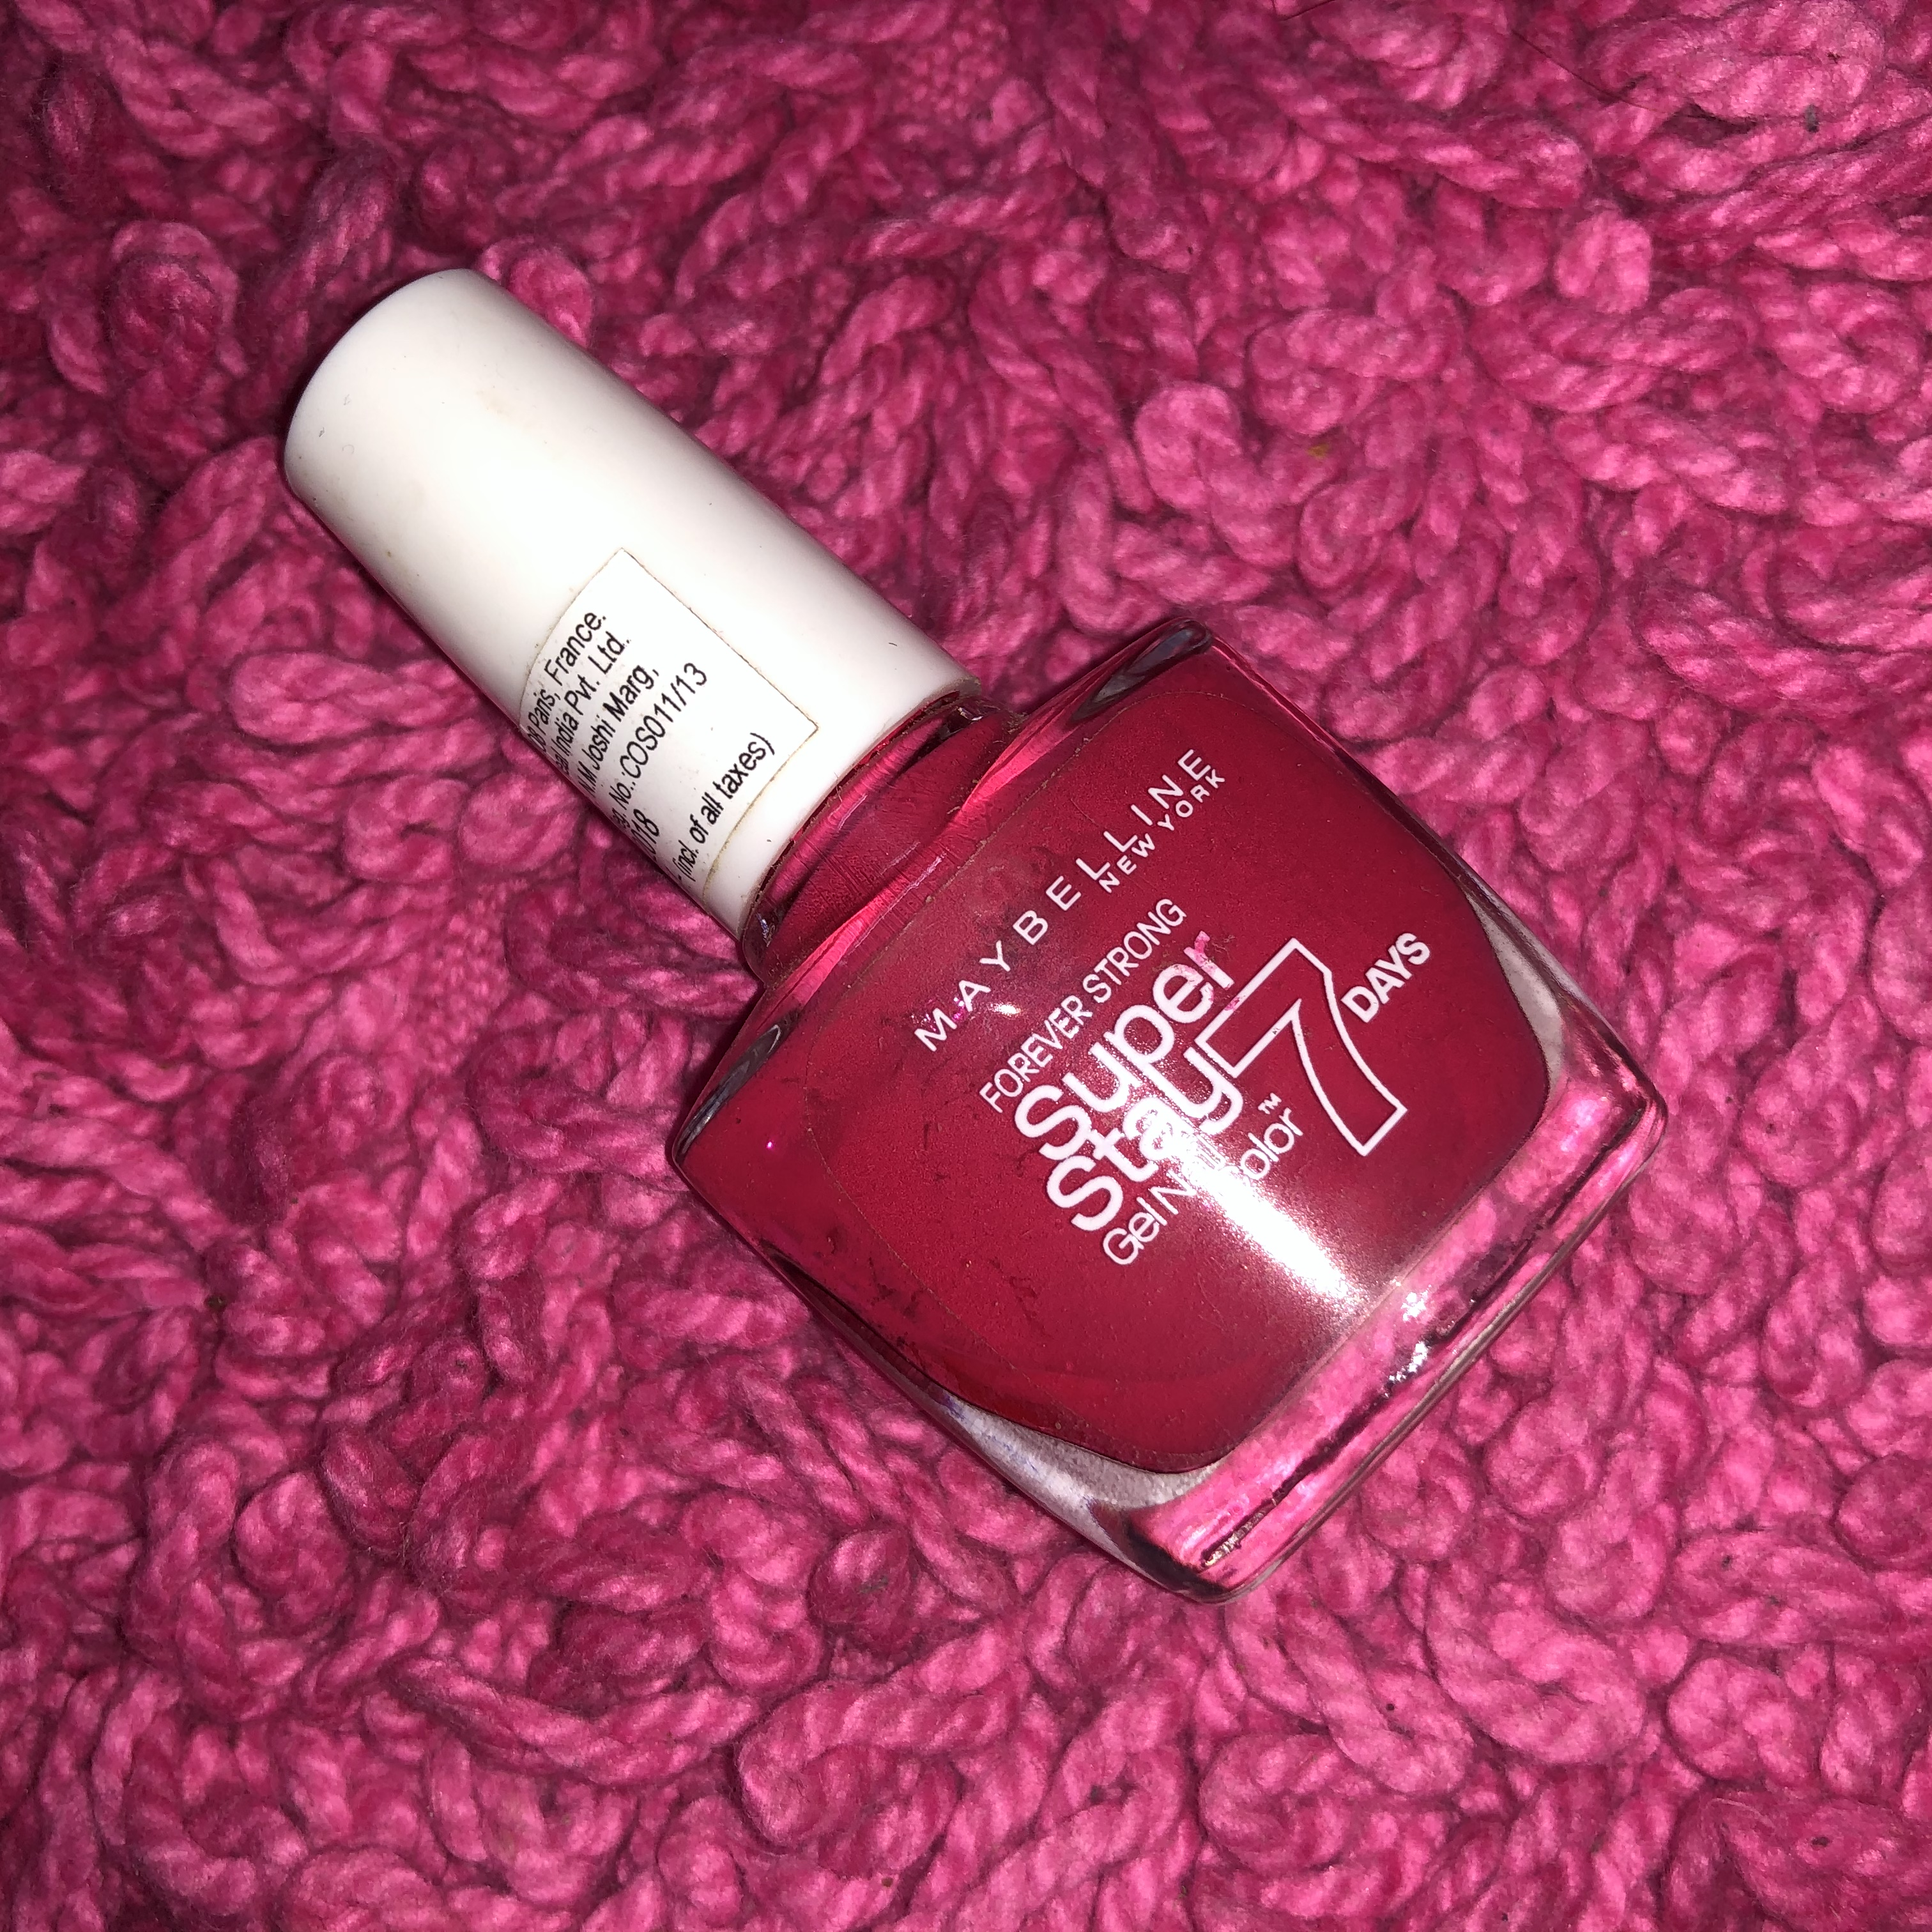 Maybelline New York Forever Strong Super Stay 7 Days Gel Nail Color-Best nail polish ever-By aishwaryaaaa